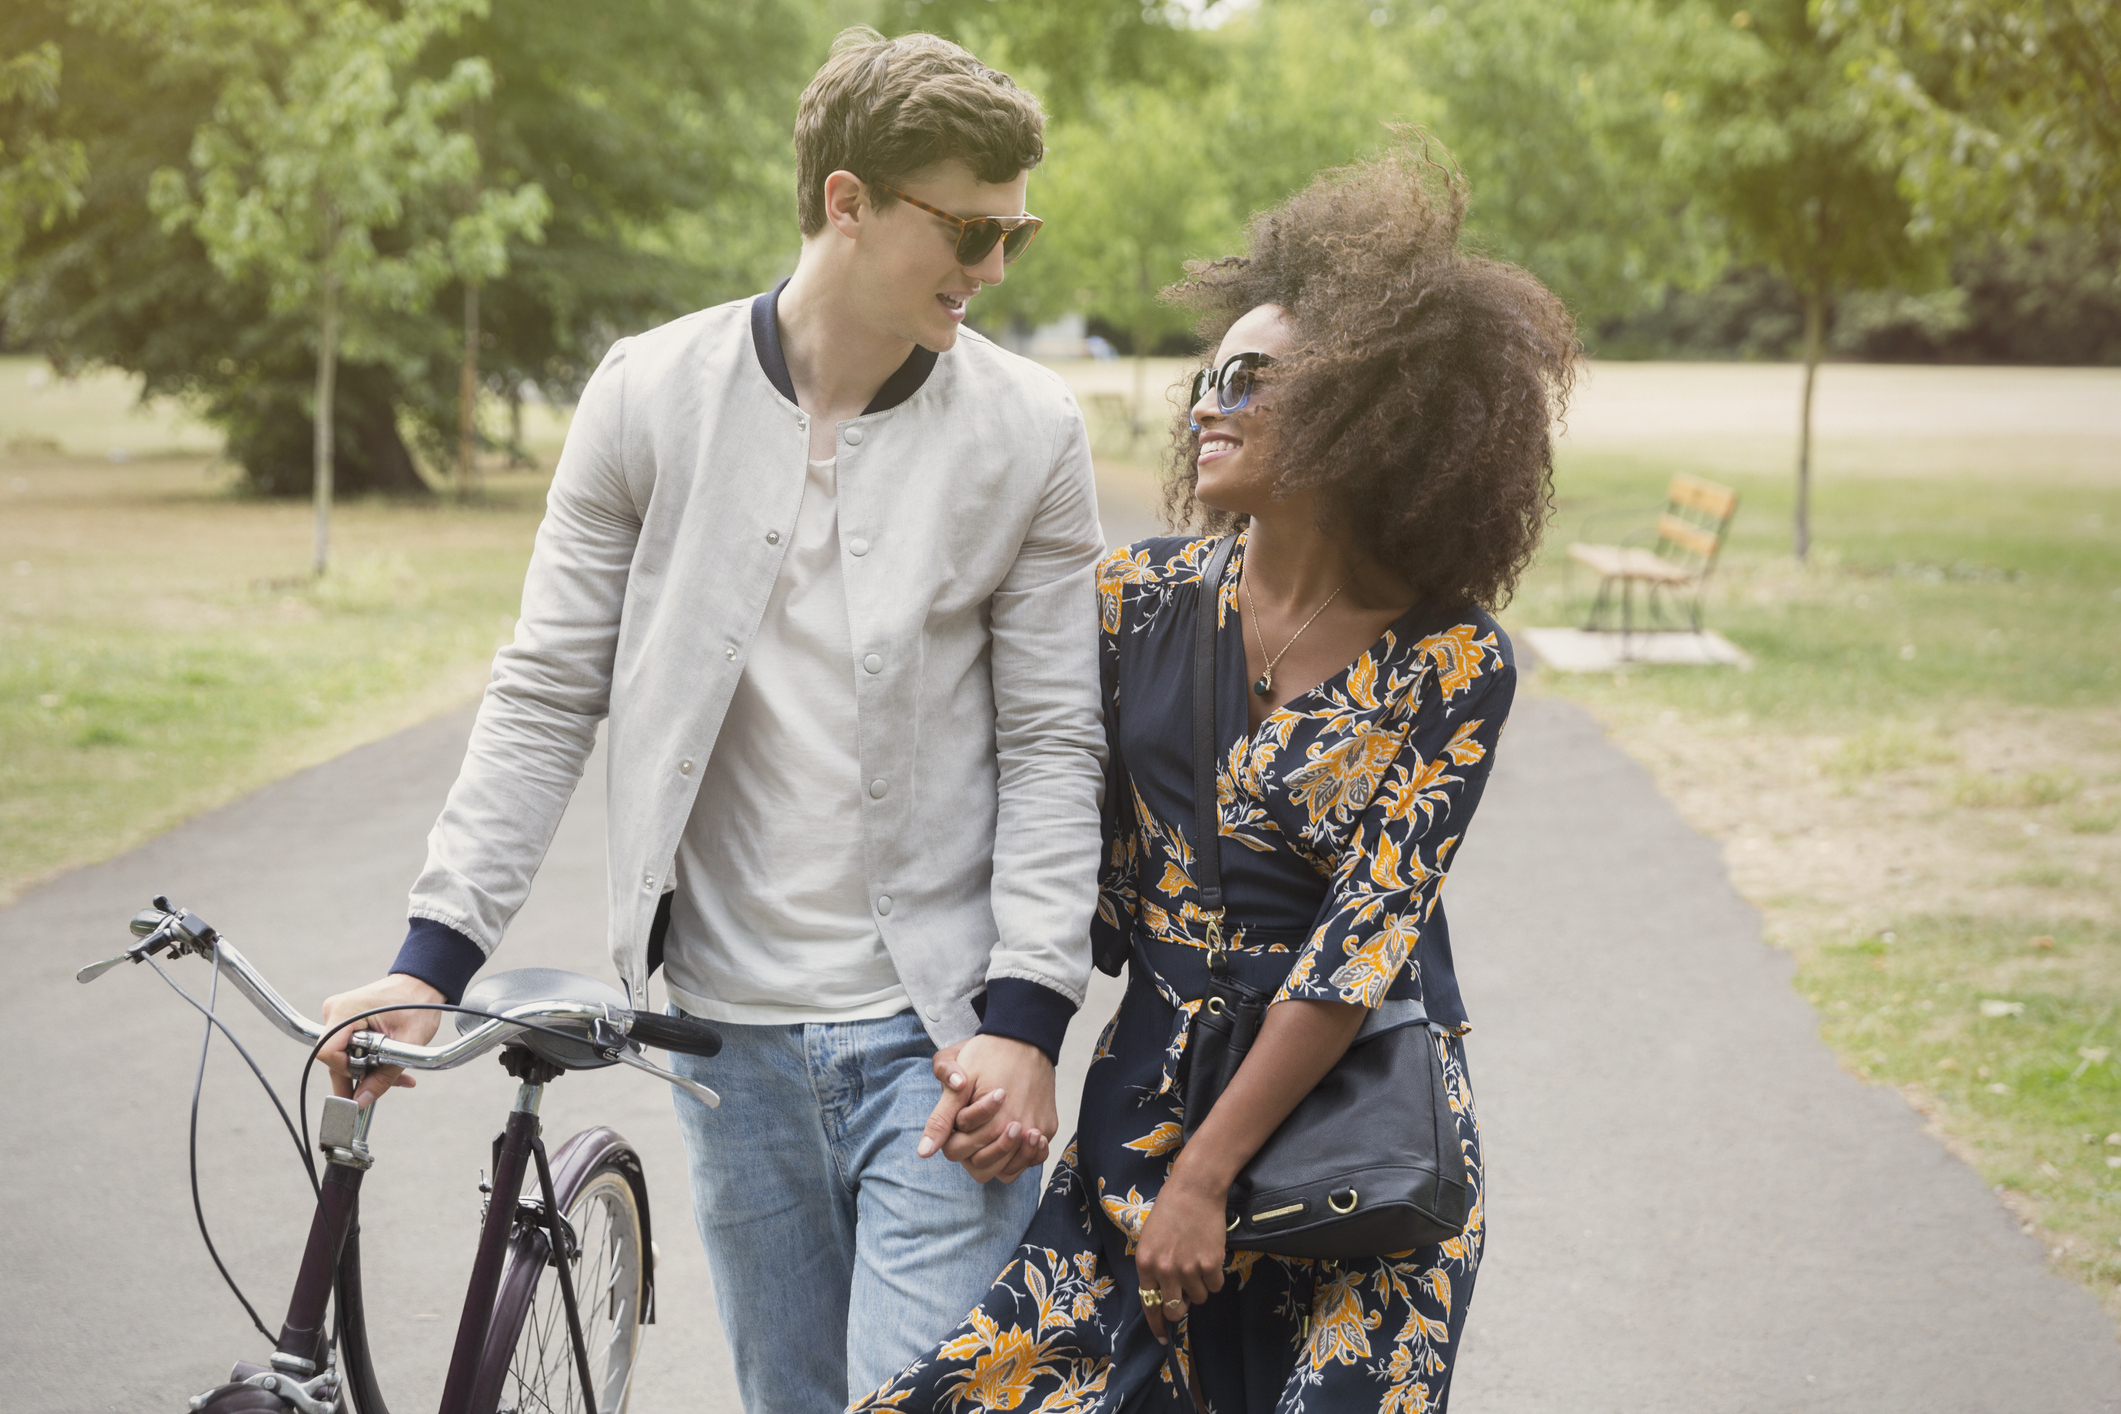 Libra season starts today, so it's time to reflect on our relationships—and make a few changes